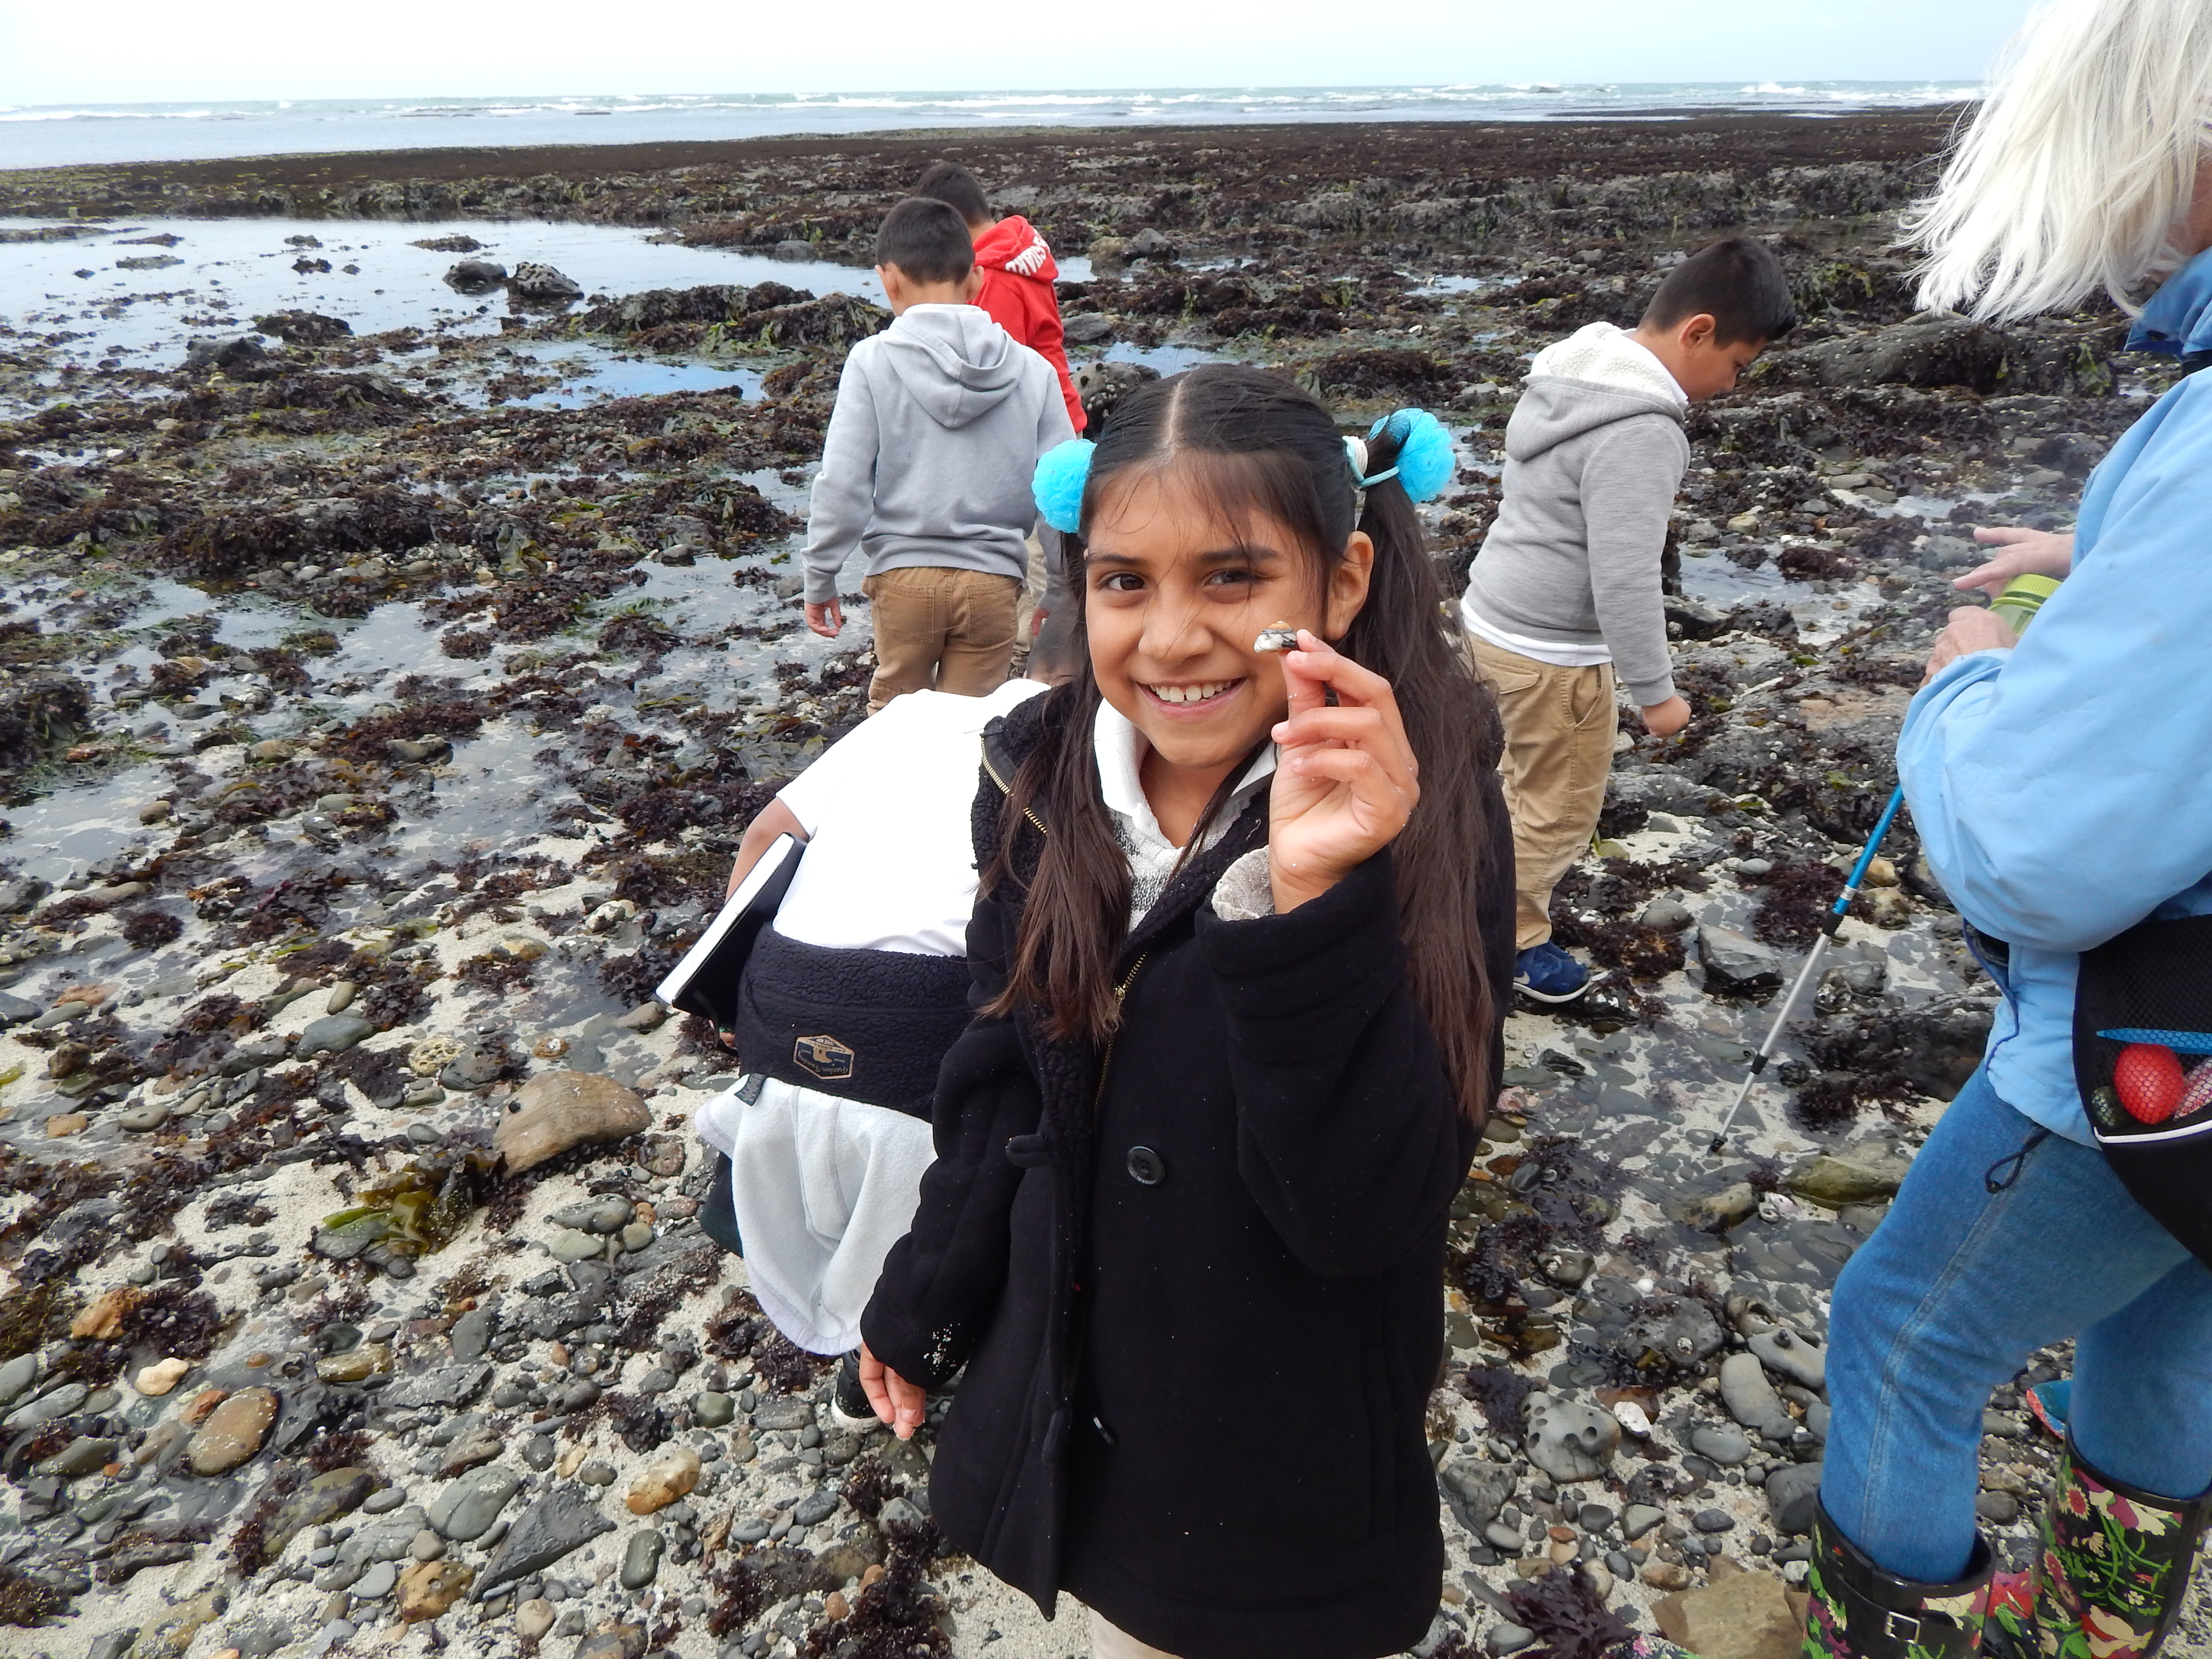 ENVIRONMENTAL VOLUNTEERS: Since forming in 1972,Environmental Volunteershas helped more than 400,000children and adults explore natural science as part of the group'smission tobuild awareness of the San Francisco Bay ecosystem. Weekly file photo.